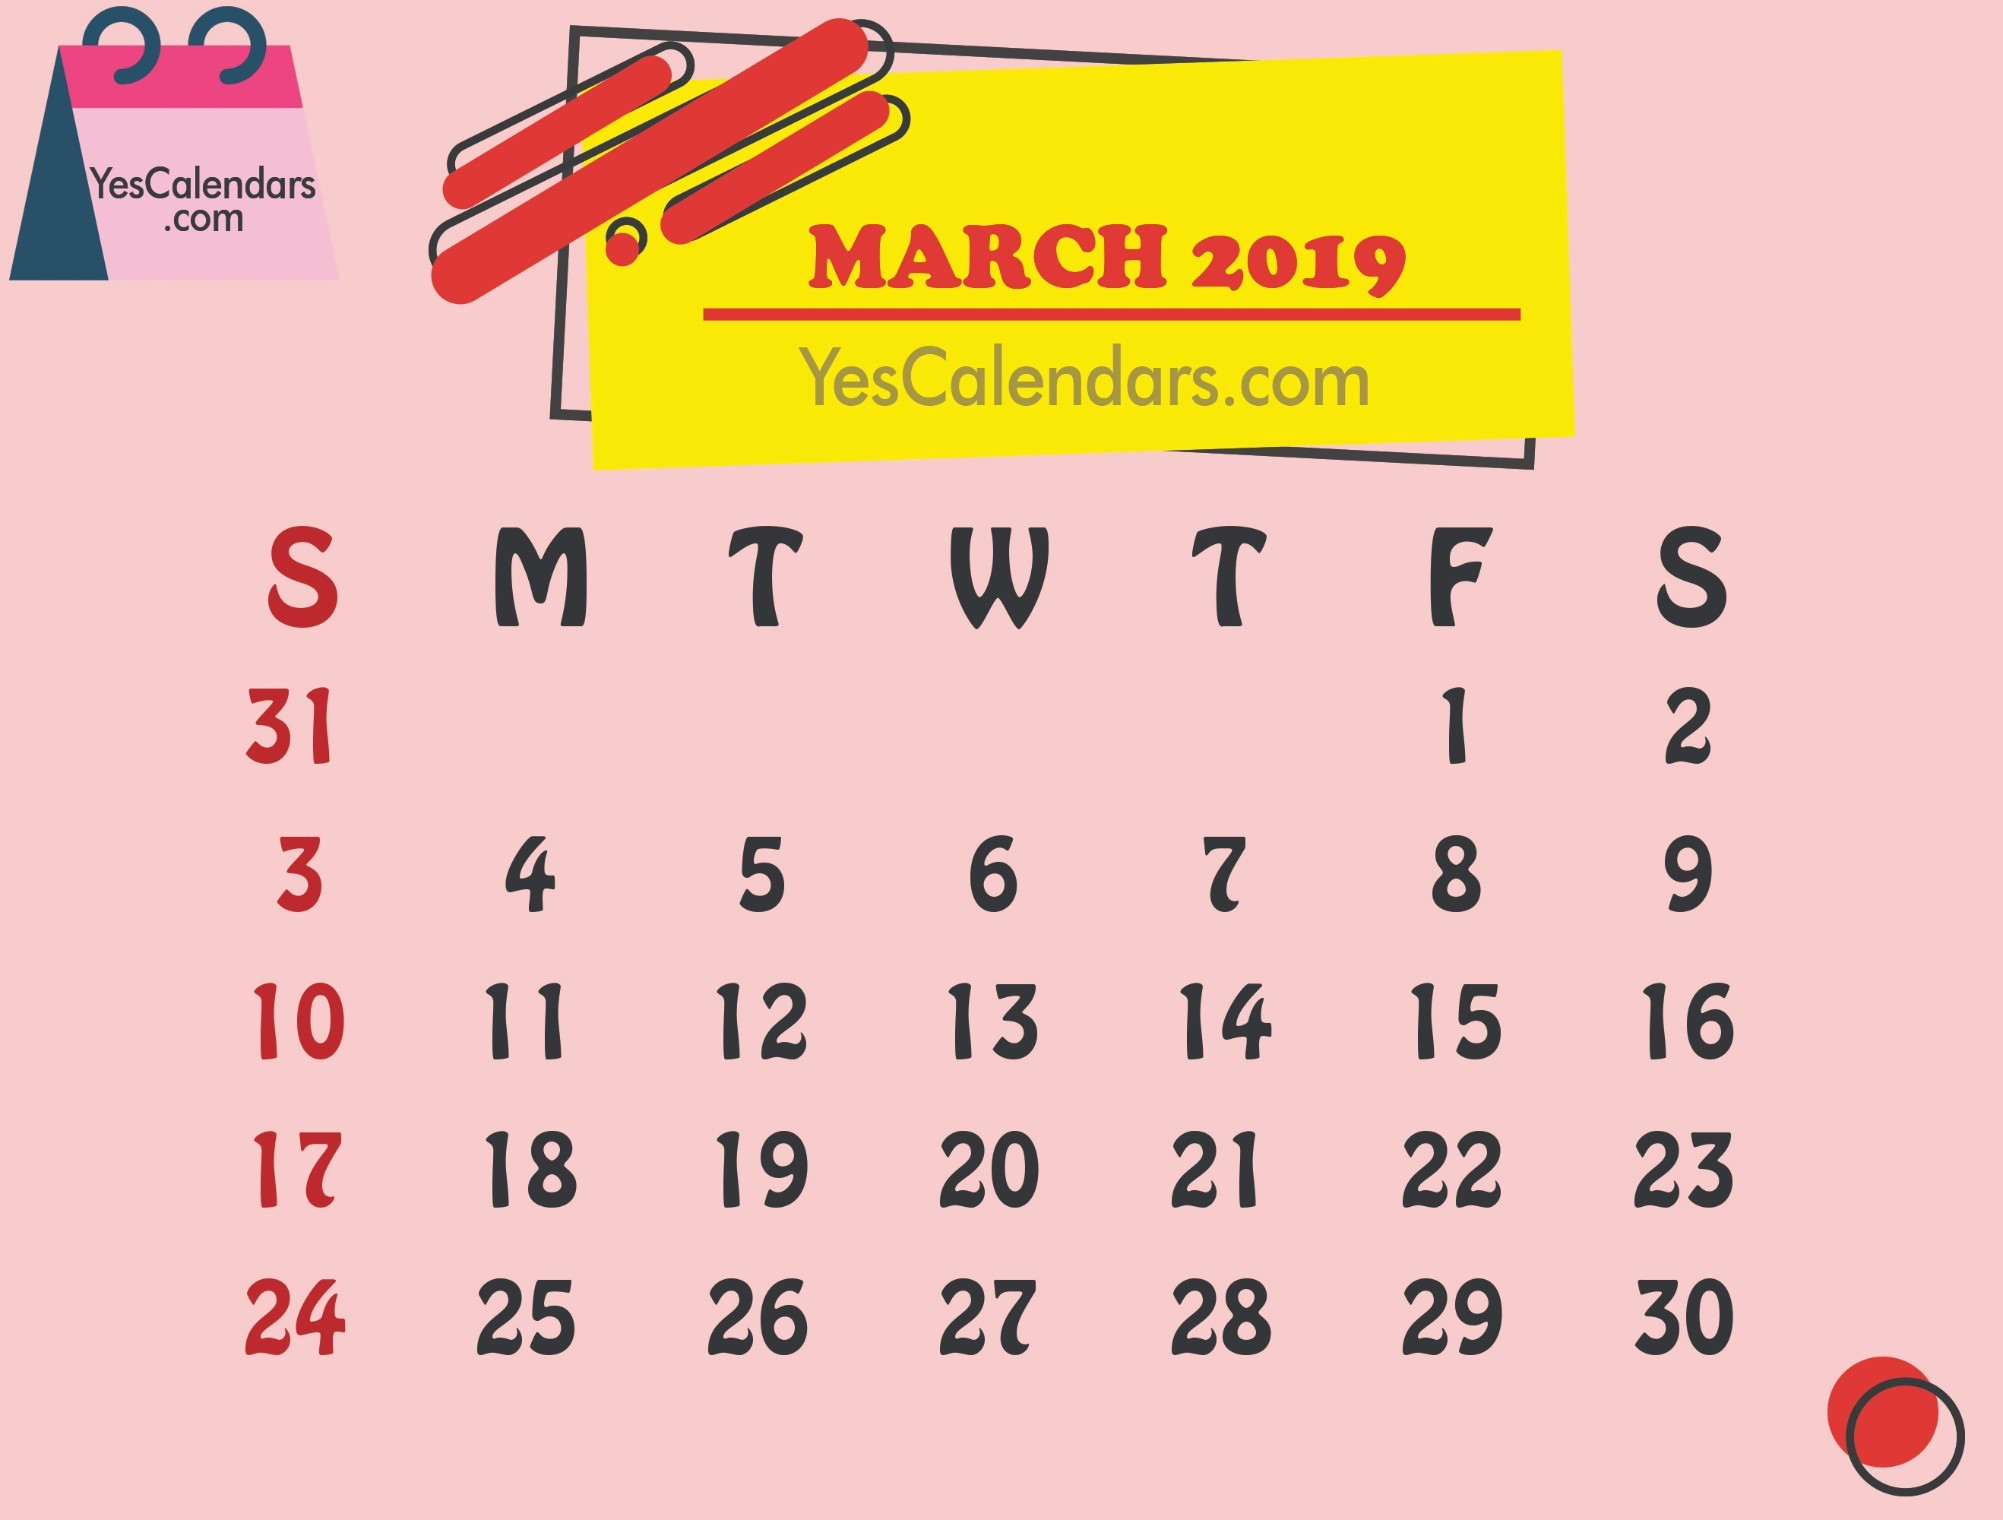 Calendar 2019 European Parliament With Printable March Template Holidays Yes Calendars